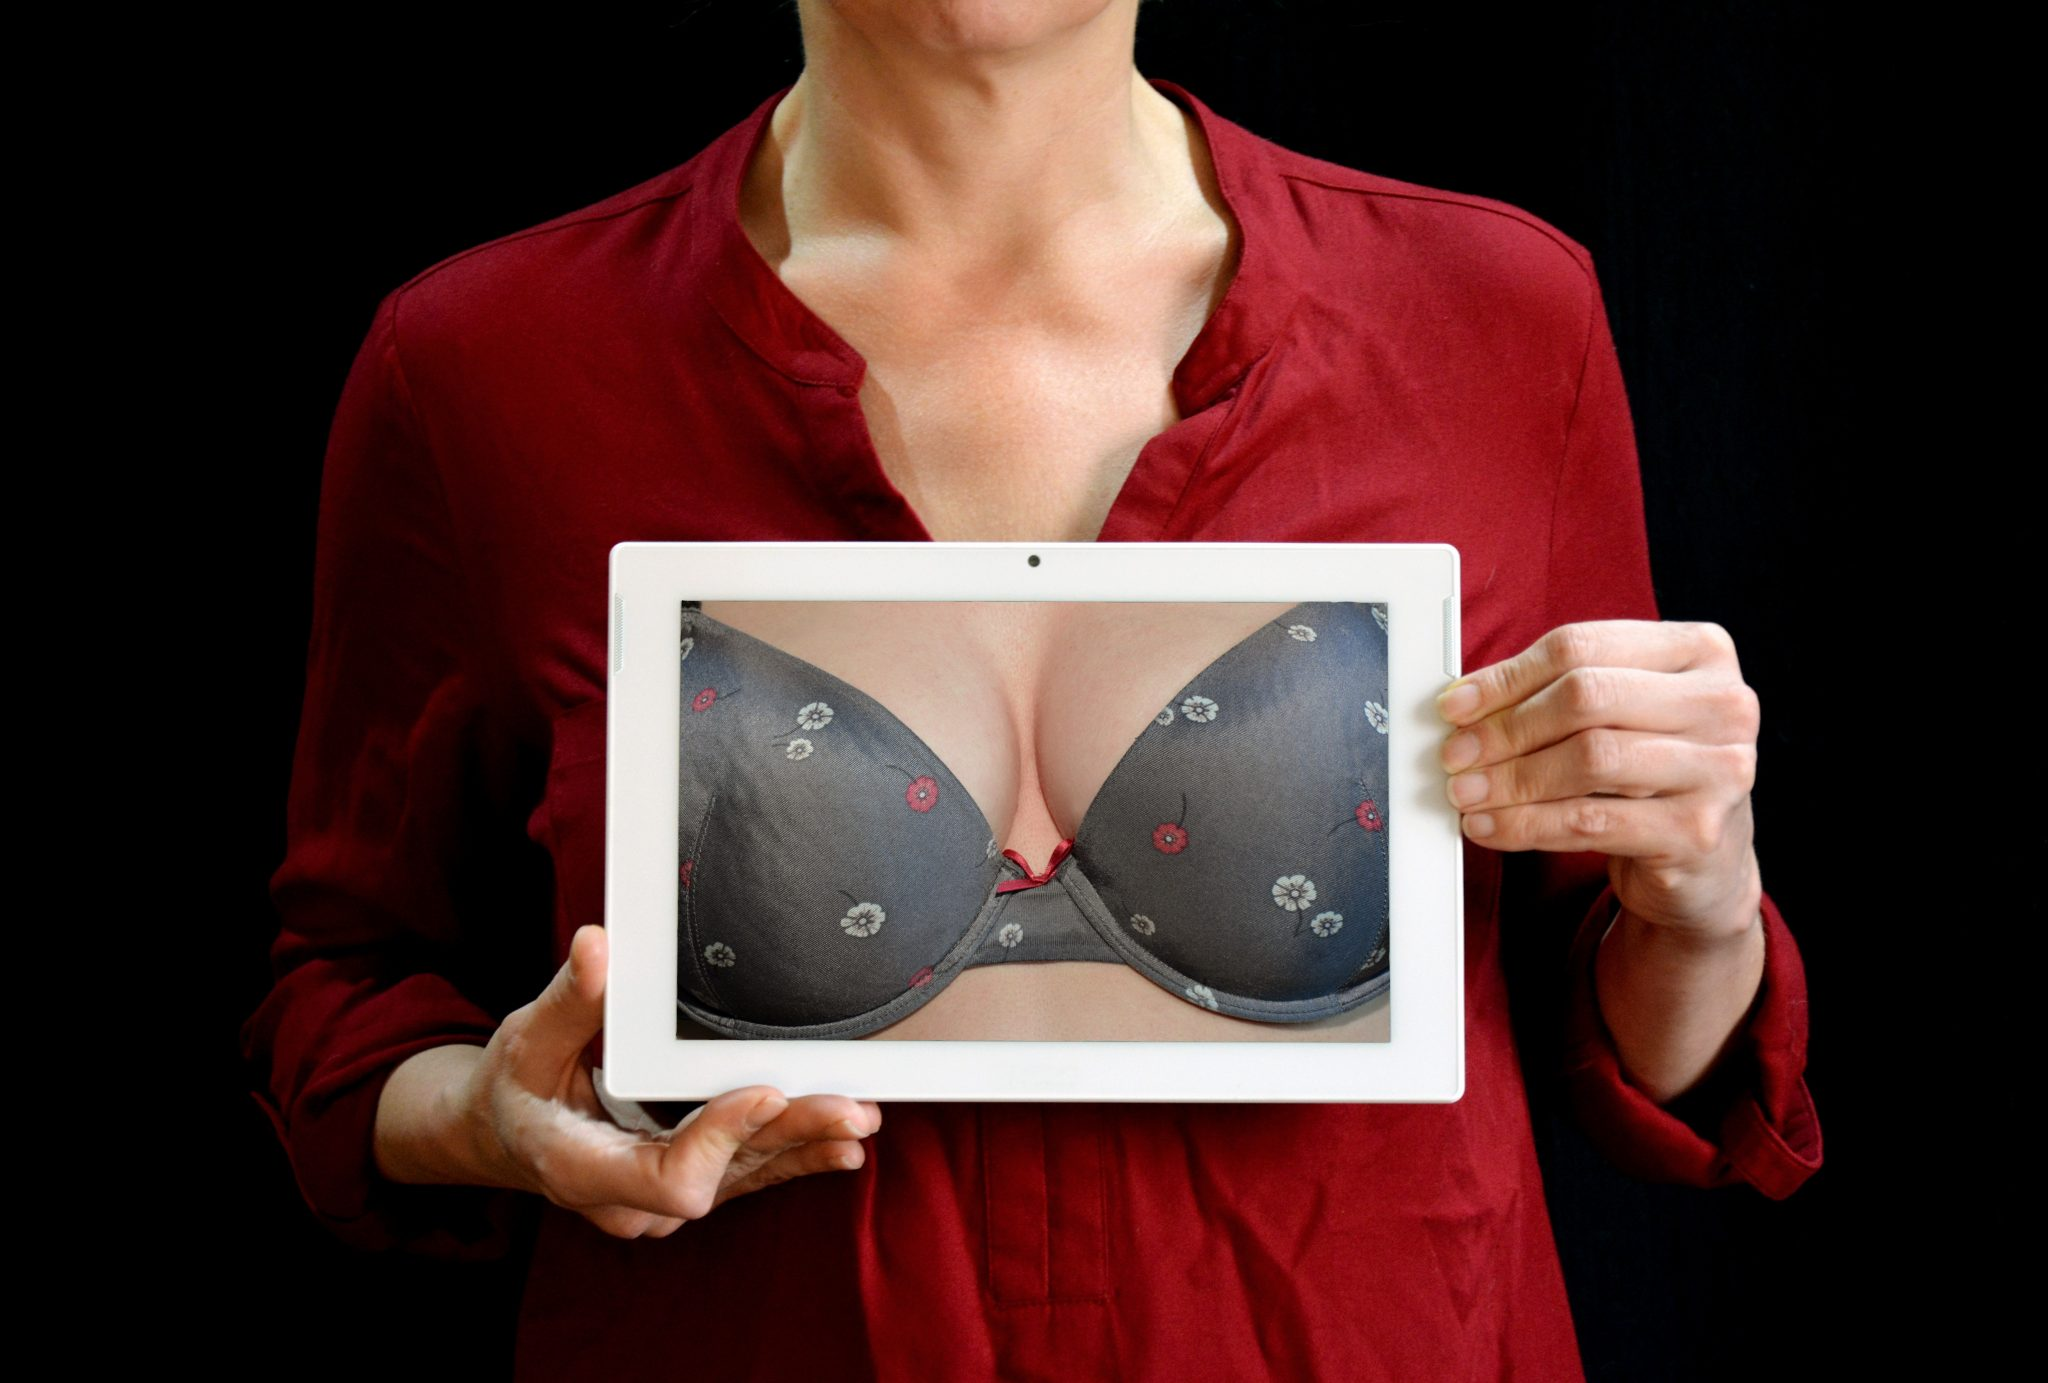 A picture of a woman wearing red and holding a picture of a woman's breast